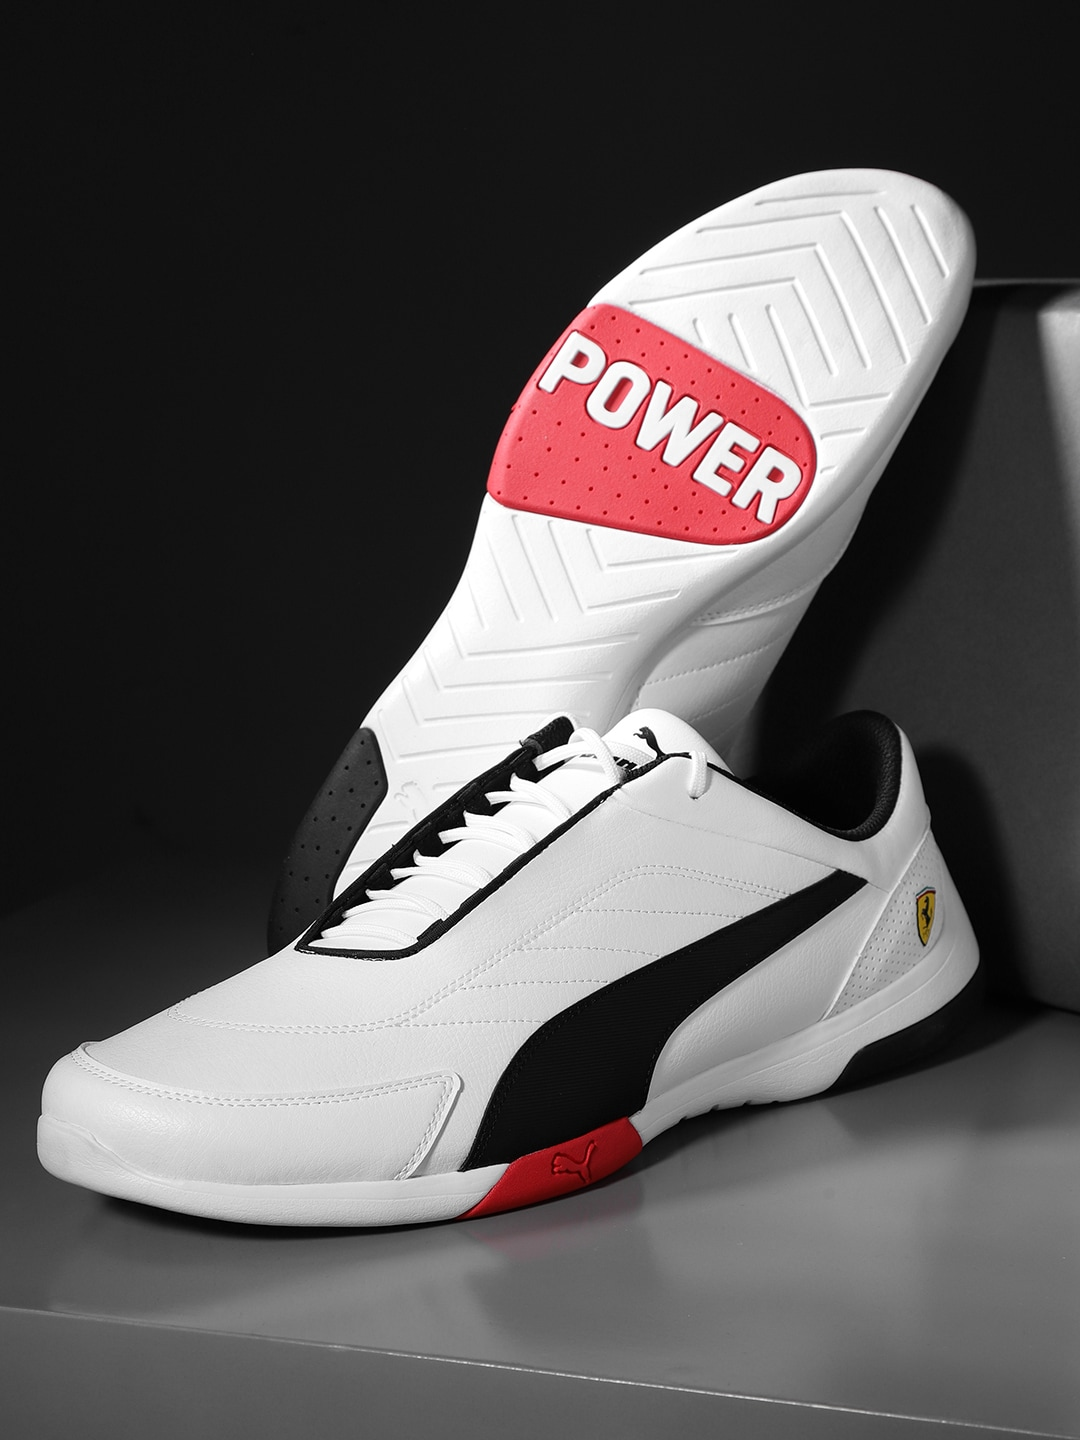 Puma Ferrari - Buy Puma Ferrari Products Online in India  08c07cde3